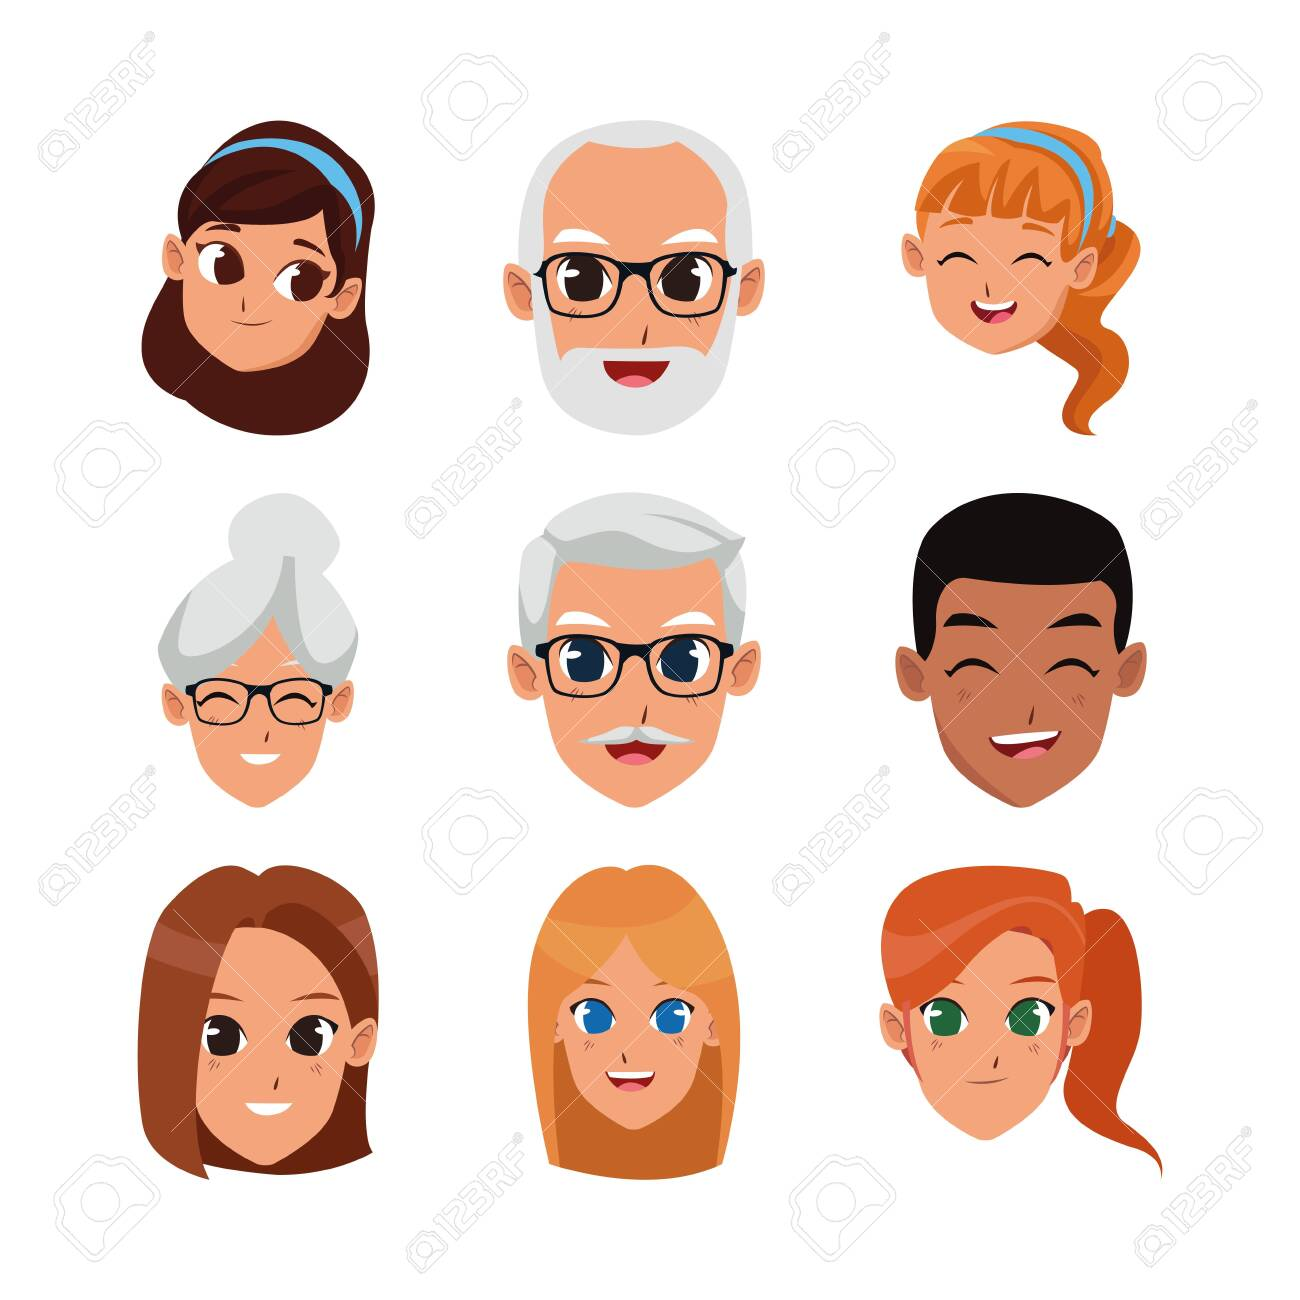 icon set of cartoon people faces over white background, vector illustration - 134709975